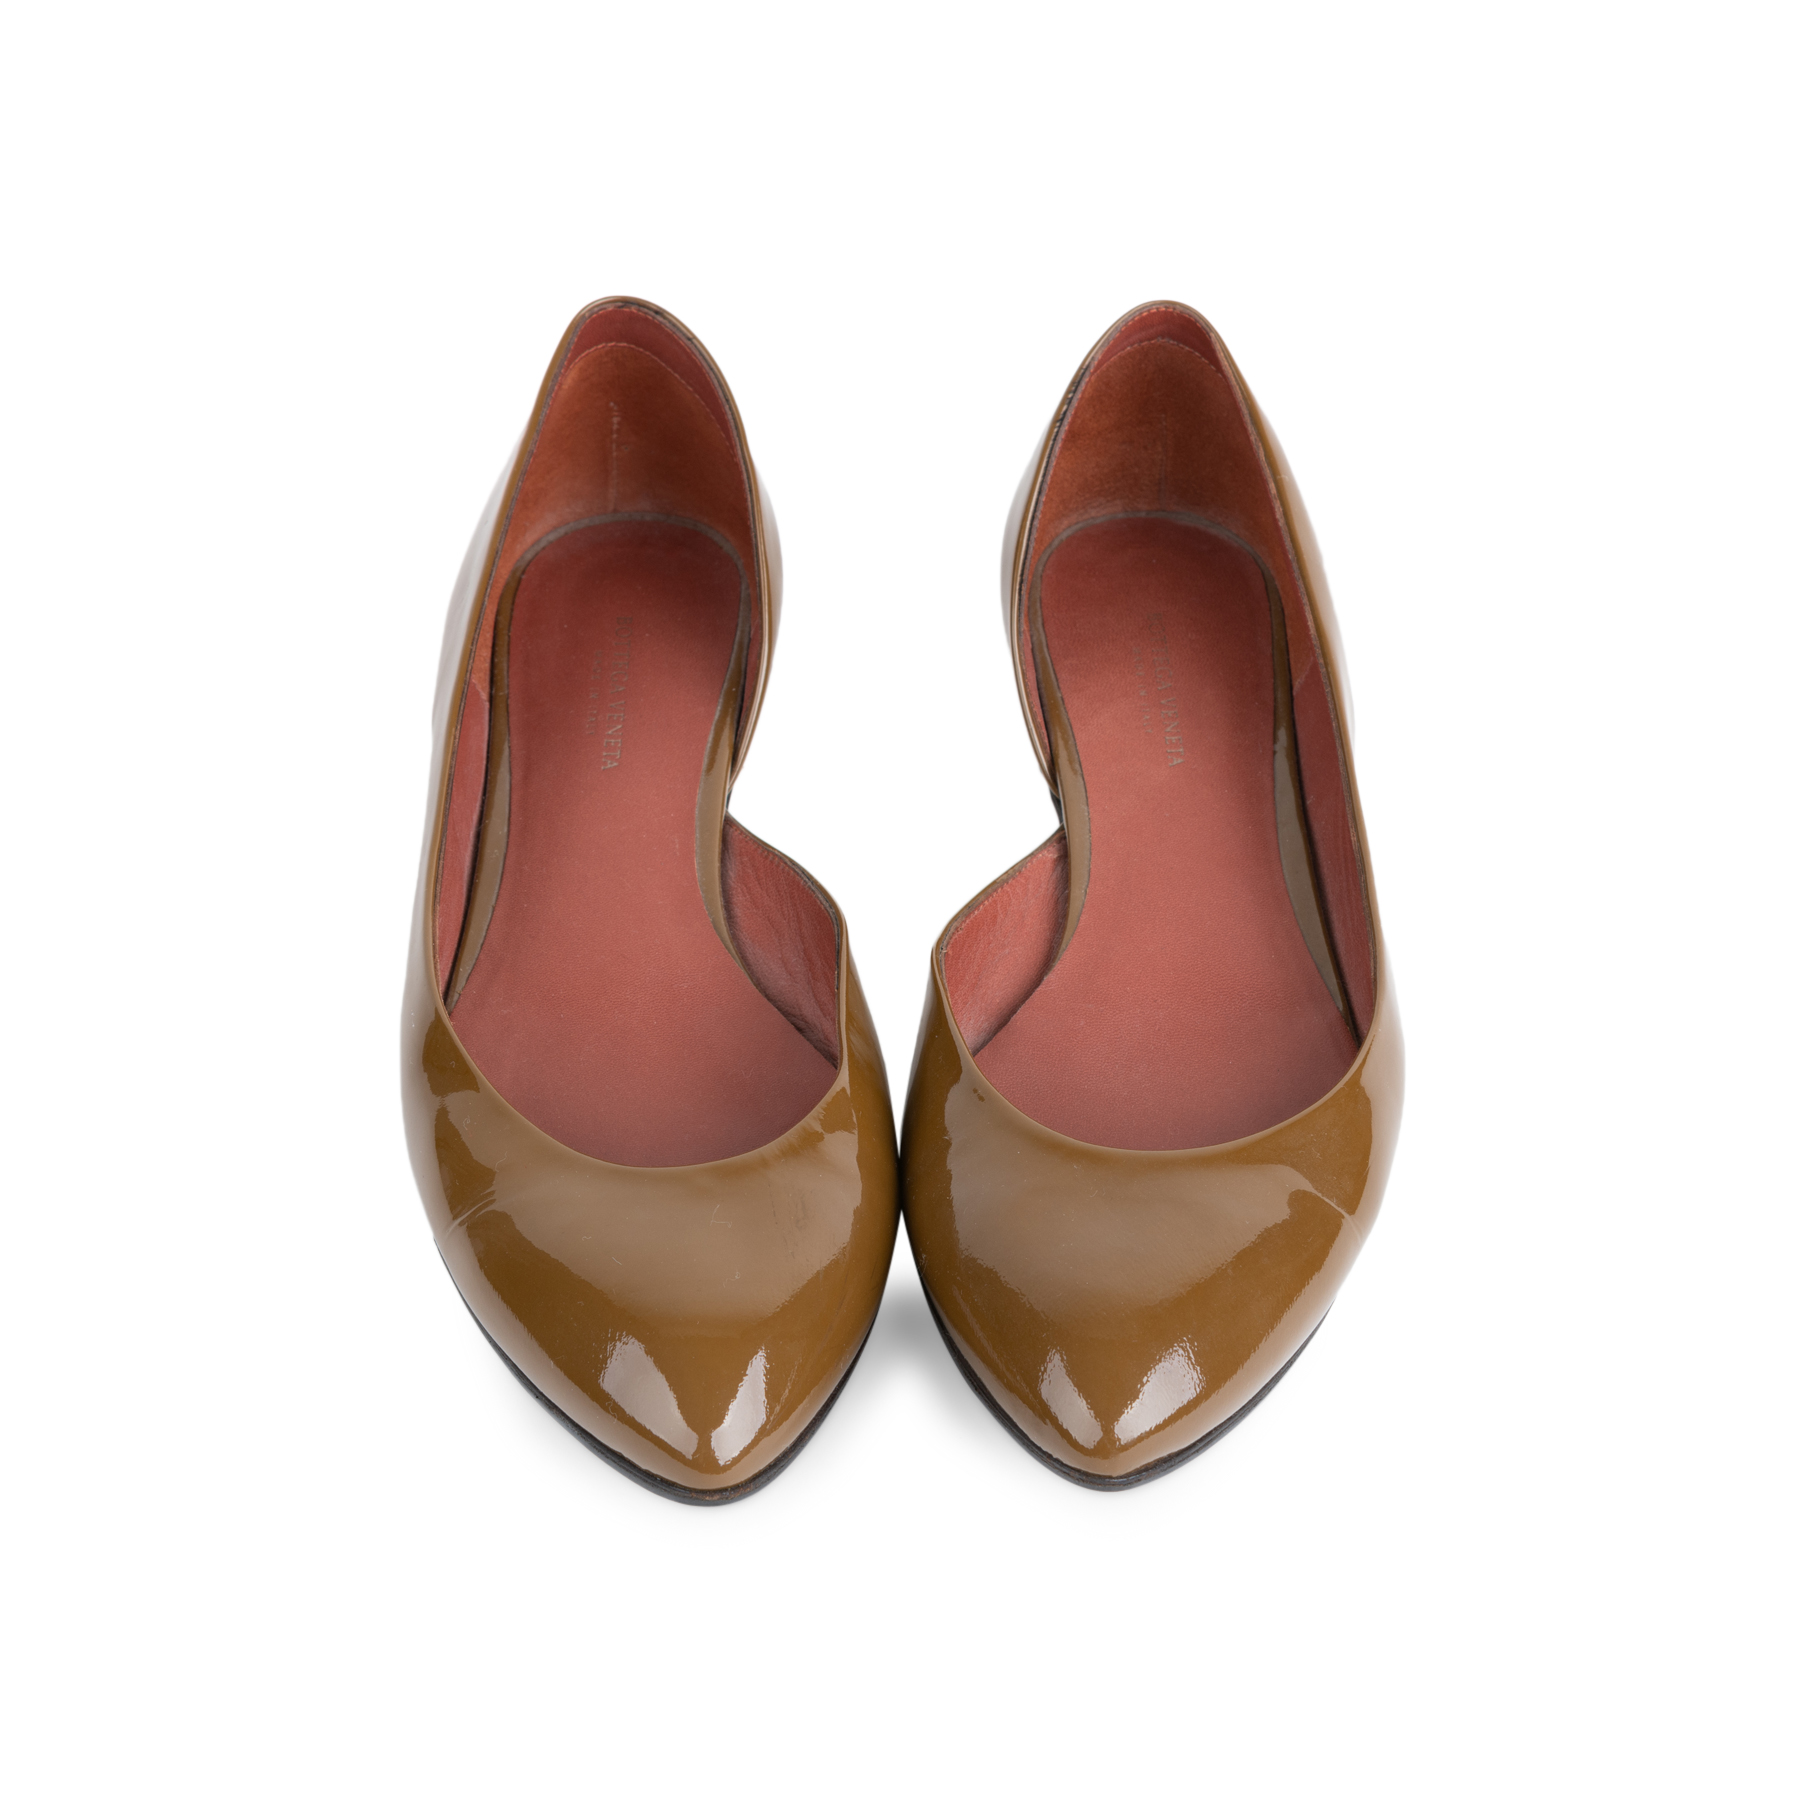 a3f73edc7a72 Authentic Second Hand Bottega Veneta Patent D'Orsay Flats (PSS-556-00013) -  THE FIFTH COLLECTION